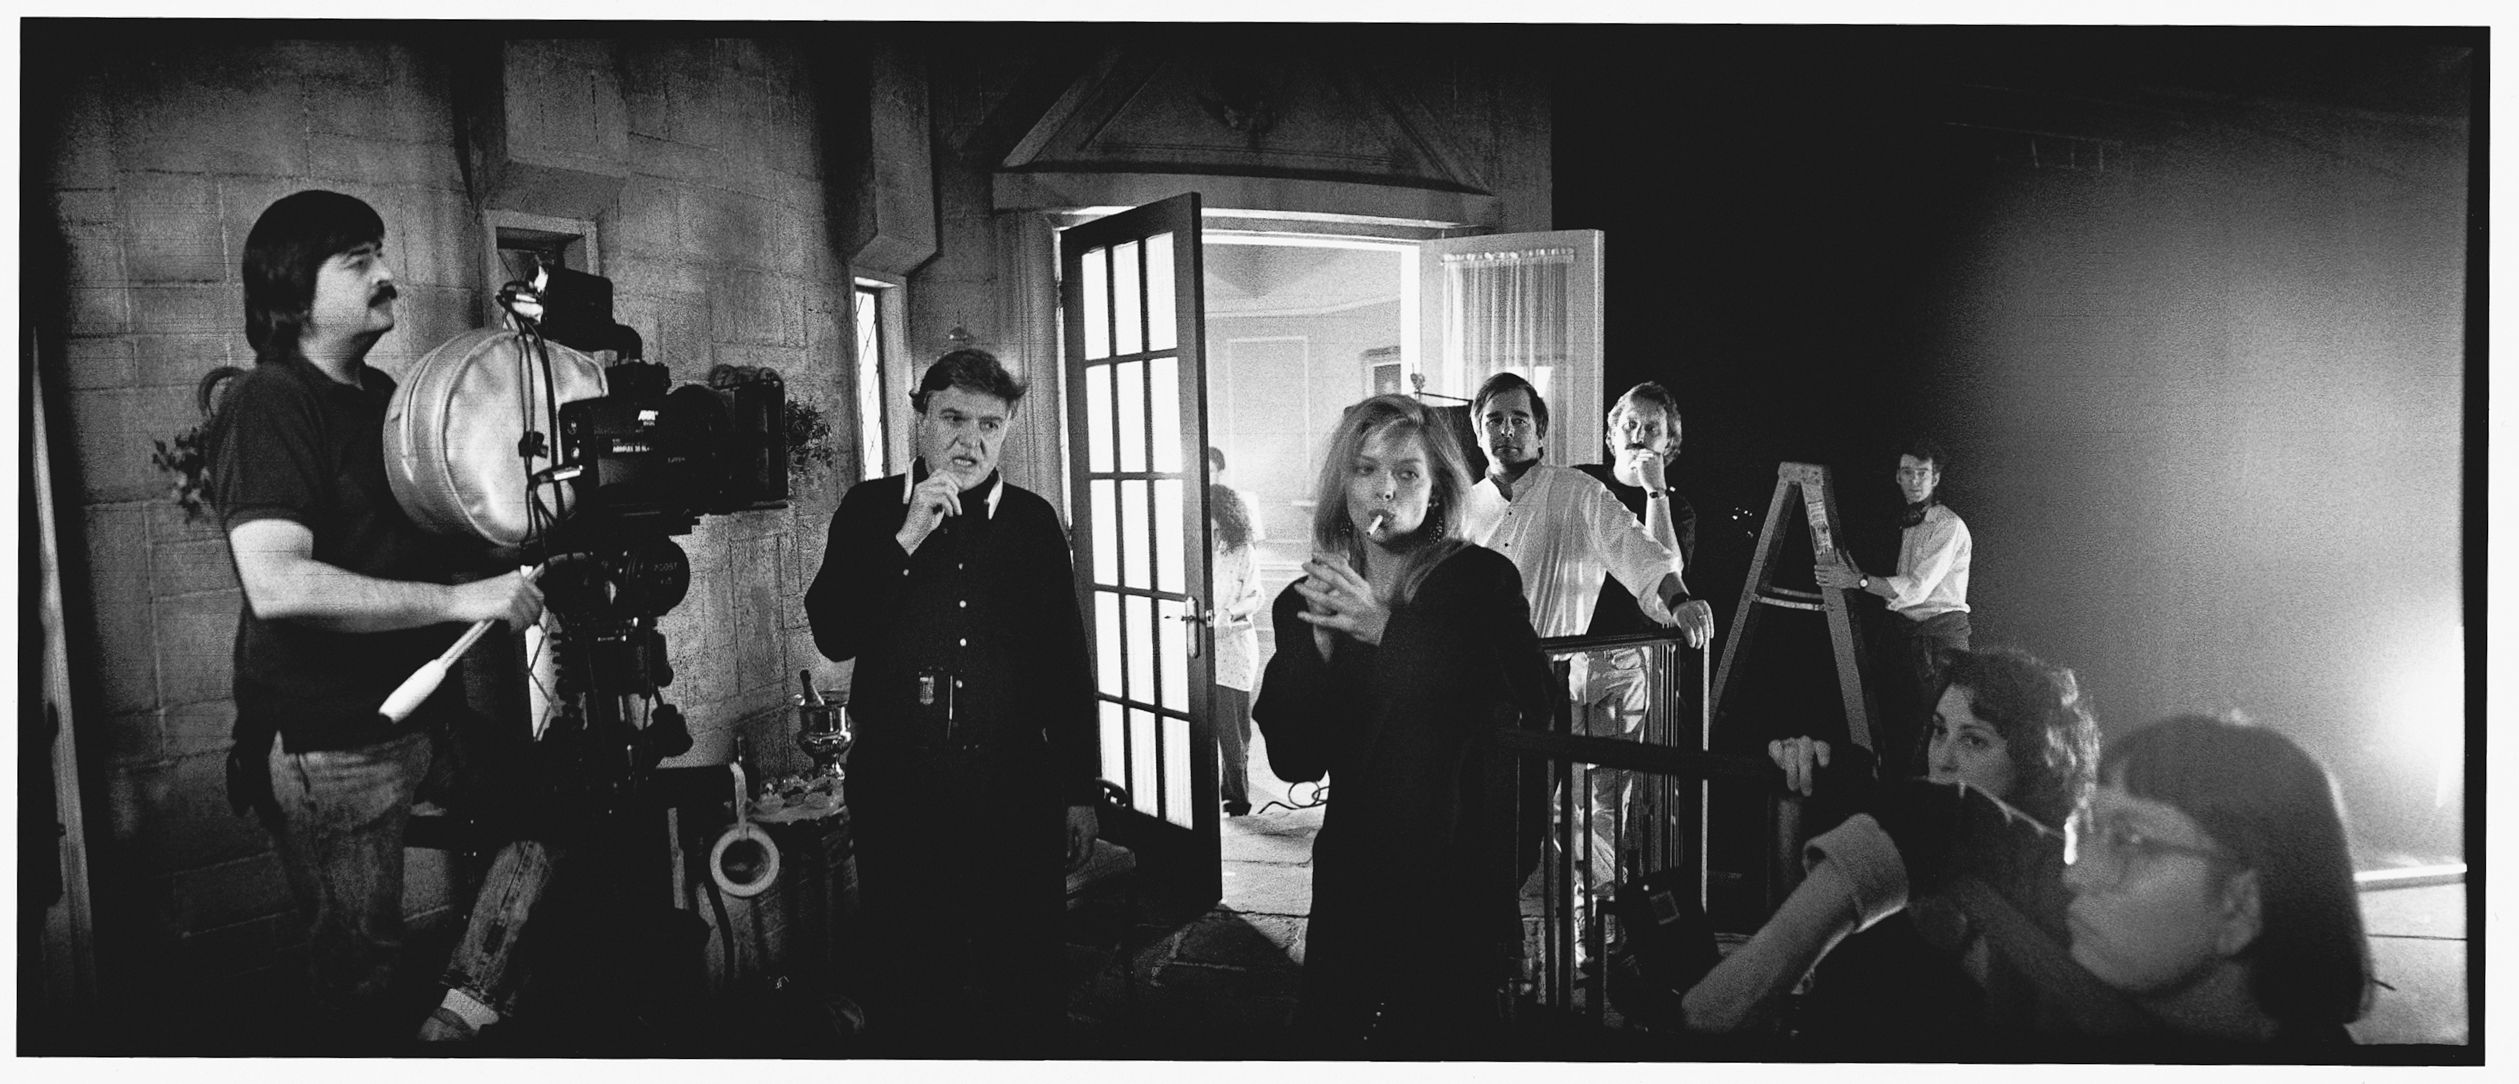 """Writer/director Steve Kloves, Michelle Pfeiffer, and Beau Bridges prepare a shot on the set of """"The Fabulous Baker Boys"""", 1989.  Photo credit: Jeff Bridges.    Since the late 1970s, Bridges has taken shots behind the scenes and between takes on all the movies he has done.  In 2006, he released a book called """"Pictures By Jeff Bridges"""" that became extremely rare and collectible."""